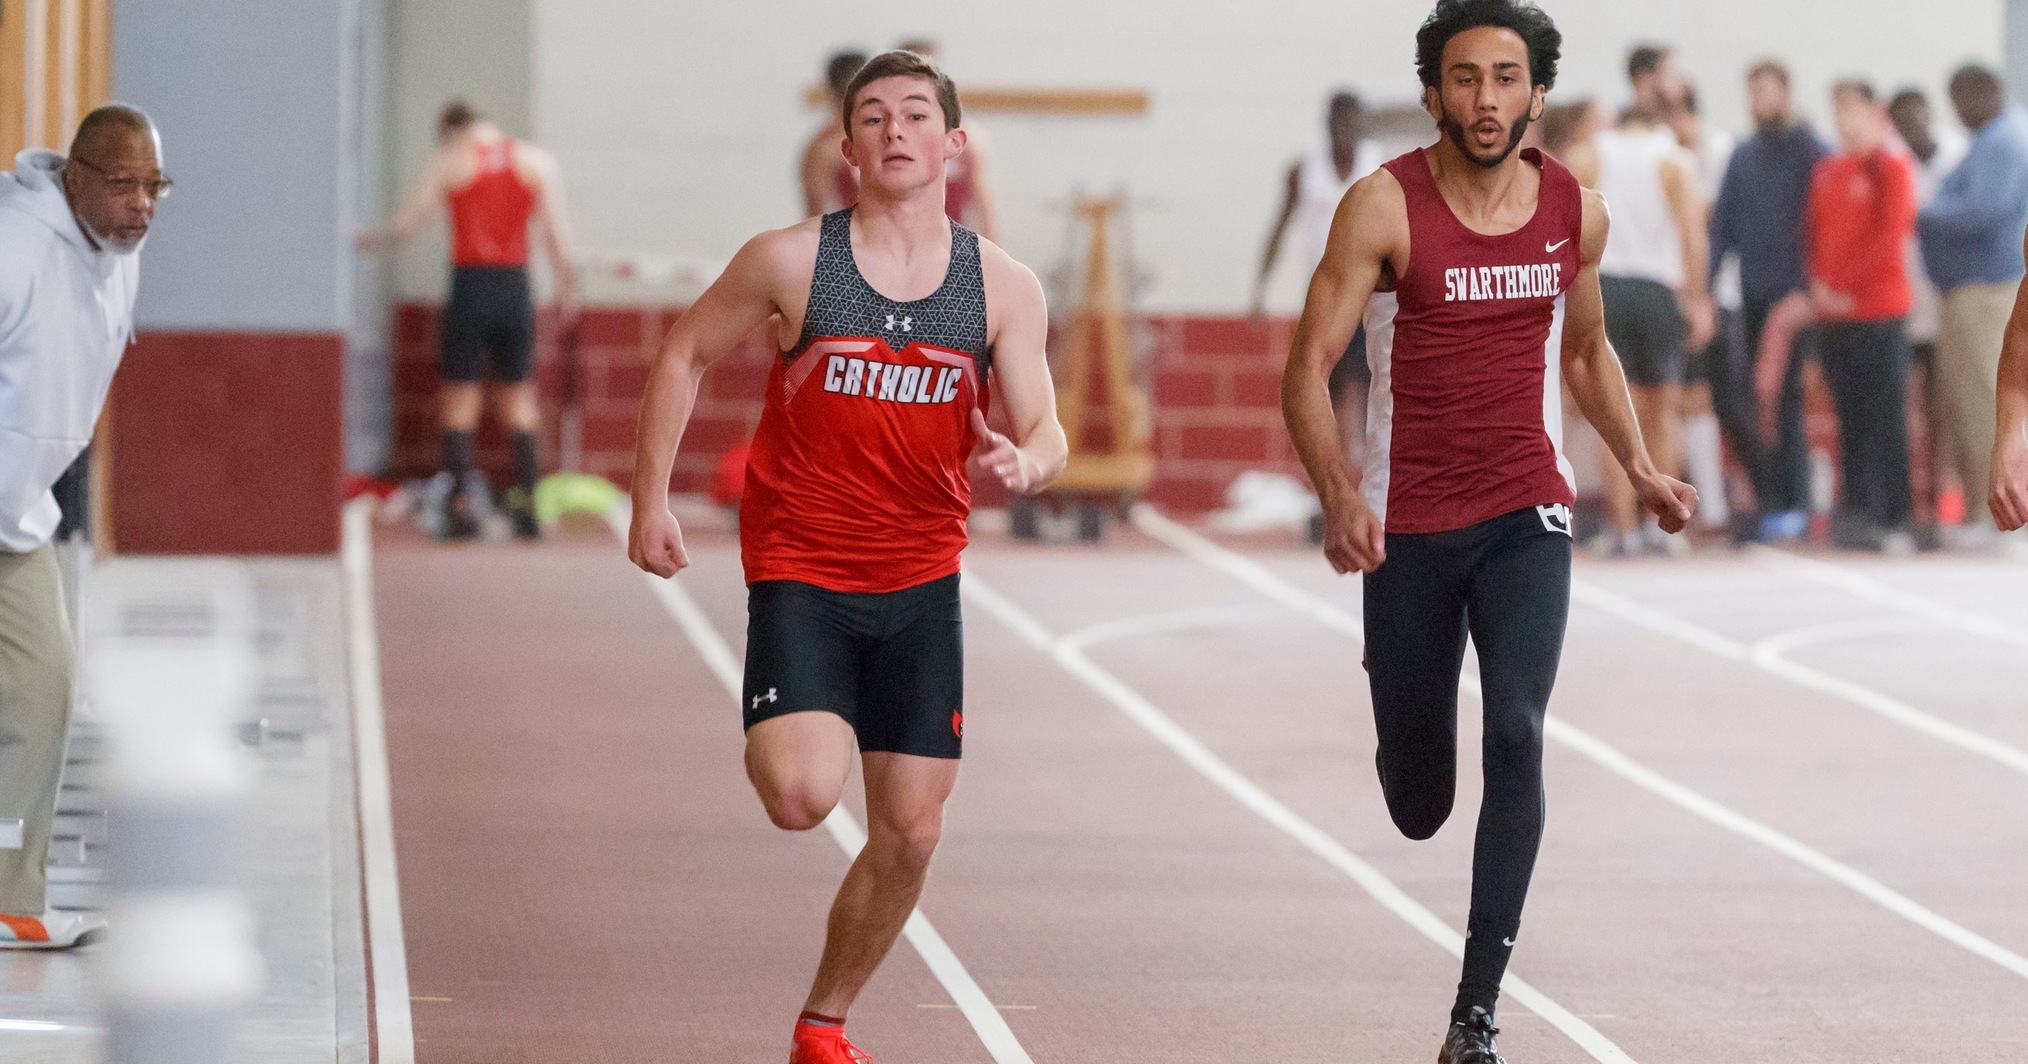 Cardinals Record Multiple Personal Bests at SU Invitational